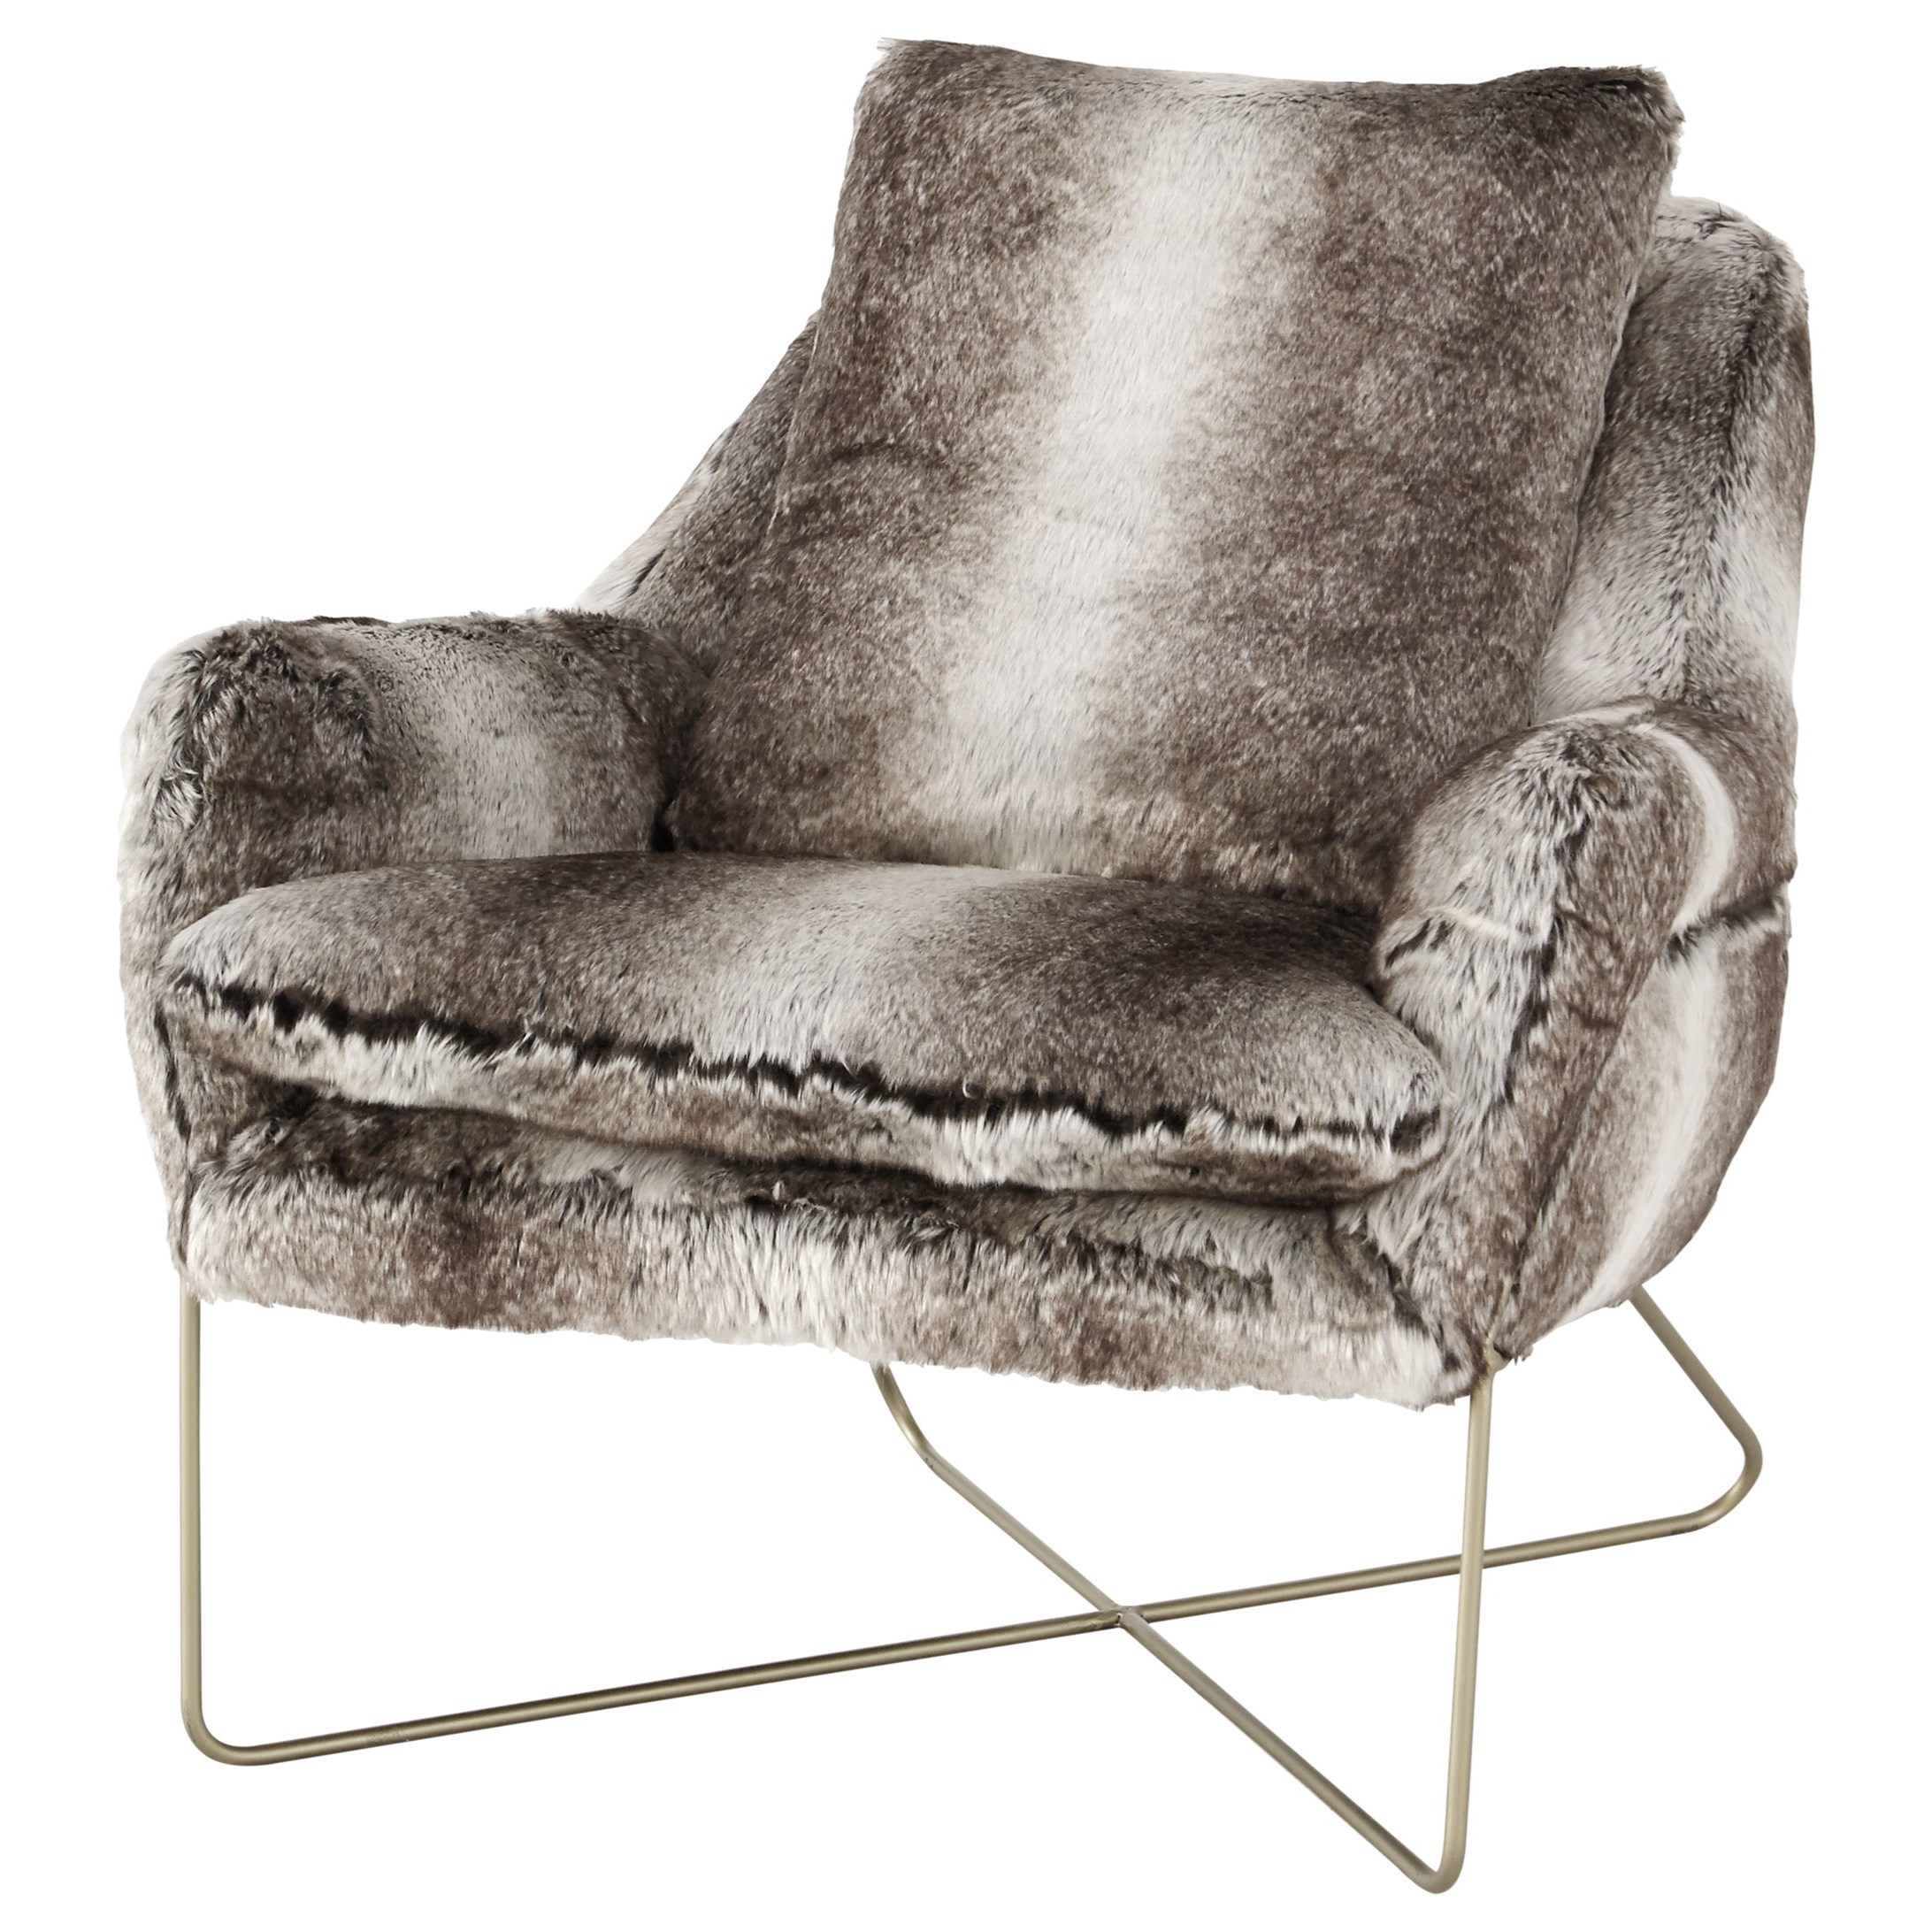 Wildau Accent Chair by Ashley (Signature Design) at Johnny Janosik